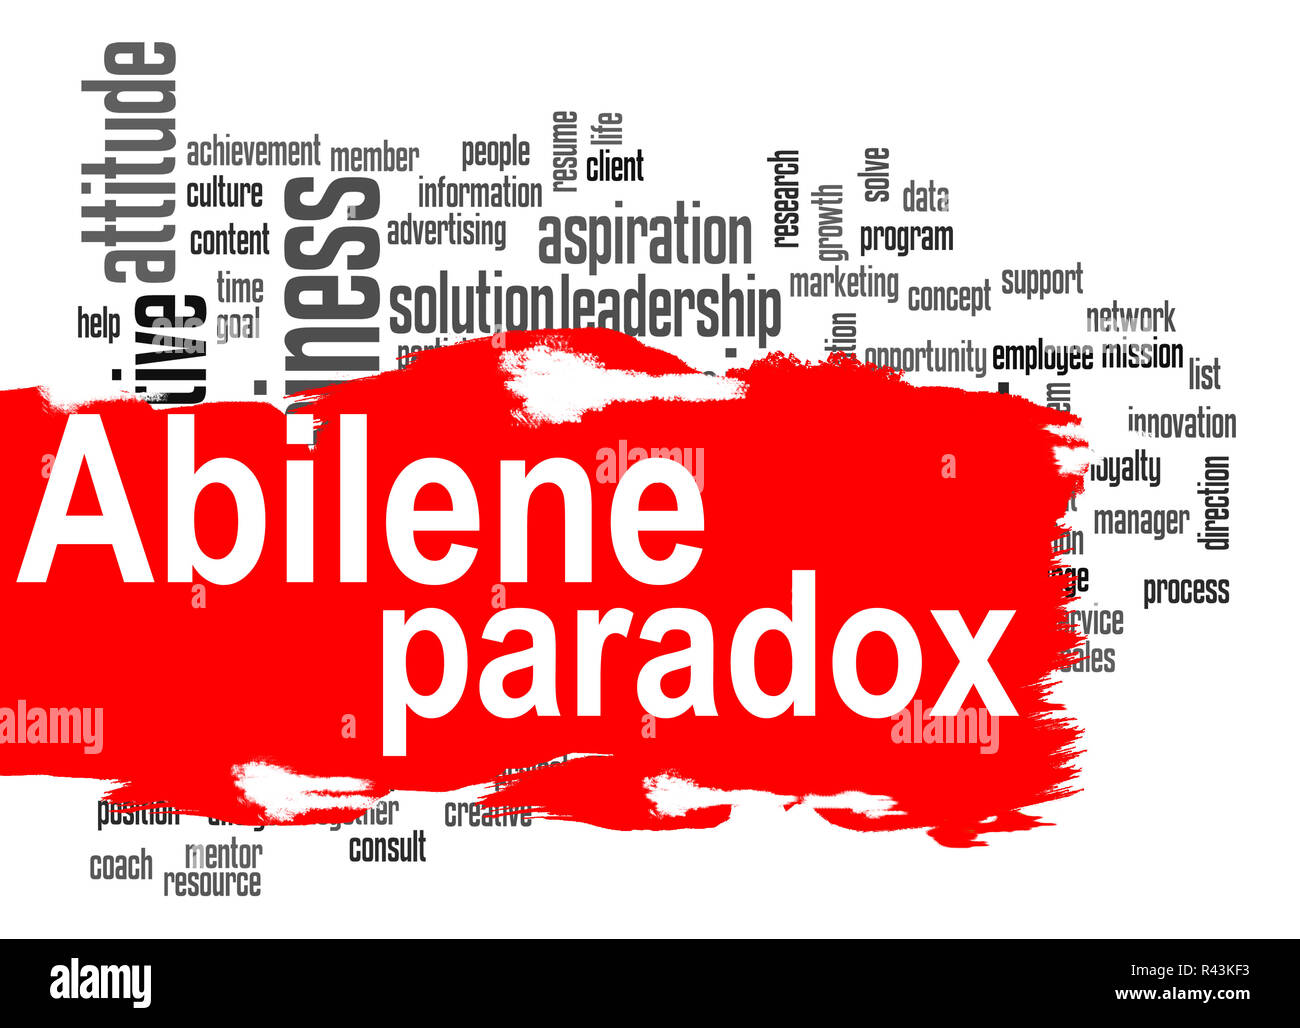 Abilene Paradox word cloud with red banner Stock Photo